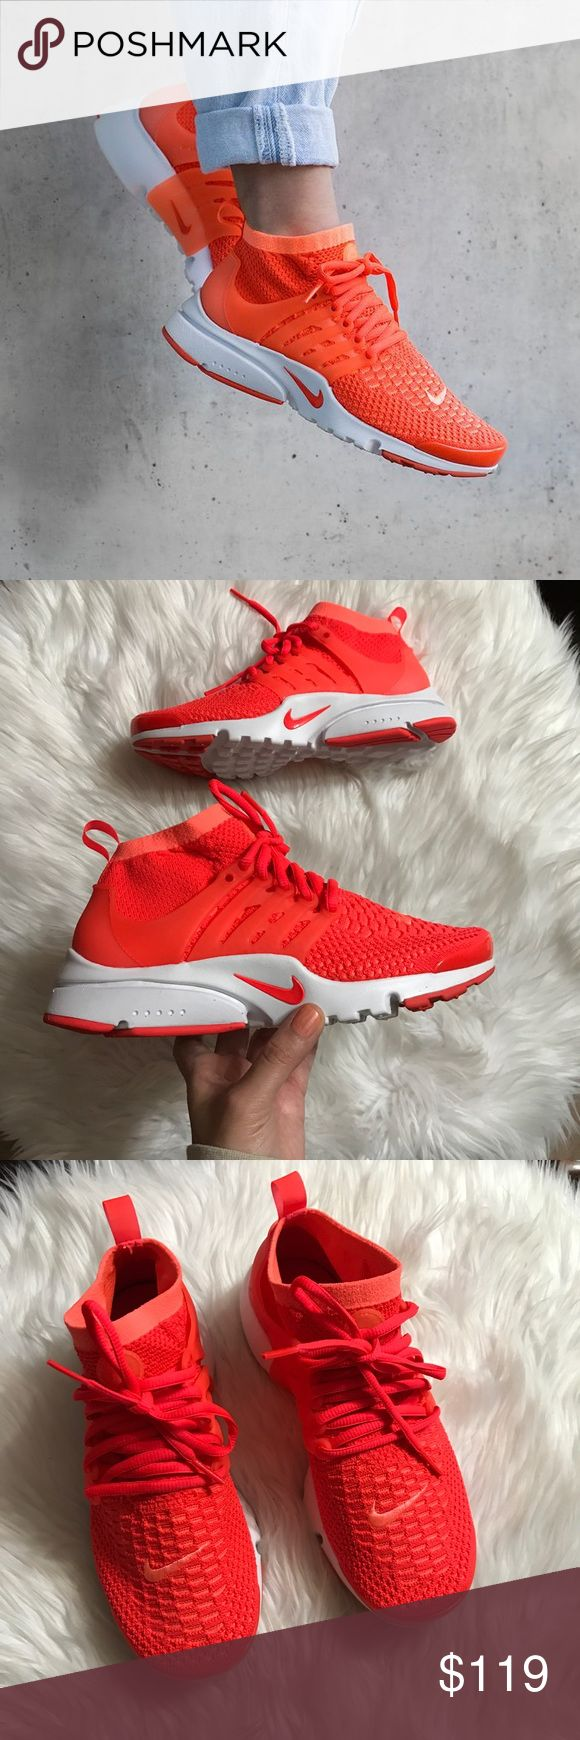 OFFER ME ☃️ Women's Nike Air Presto Flyknit Brand new with the box but no lid. Bright Mango/ Bright Crimson Nike Shoes Athletic Shoes